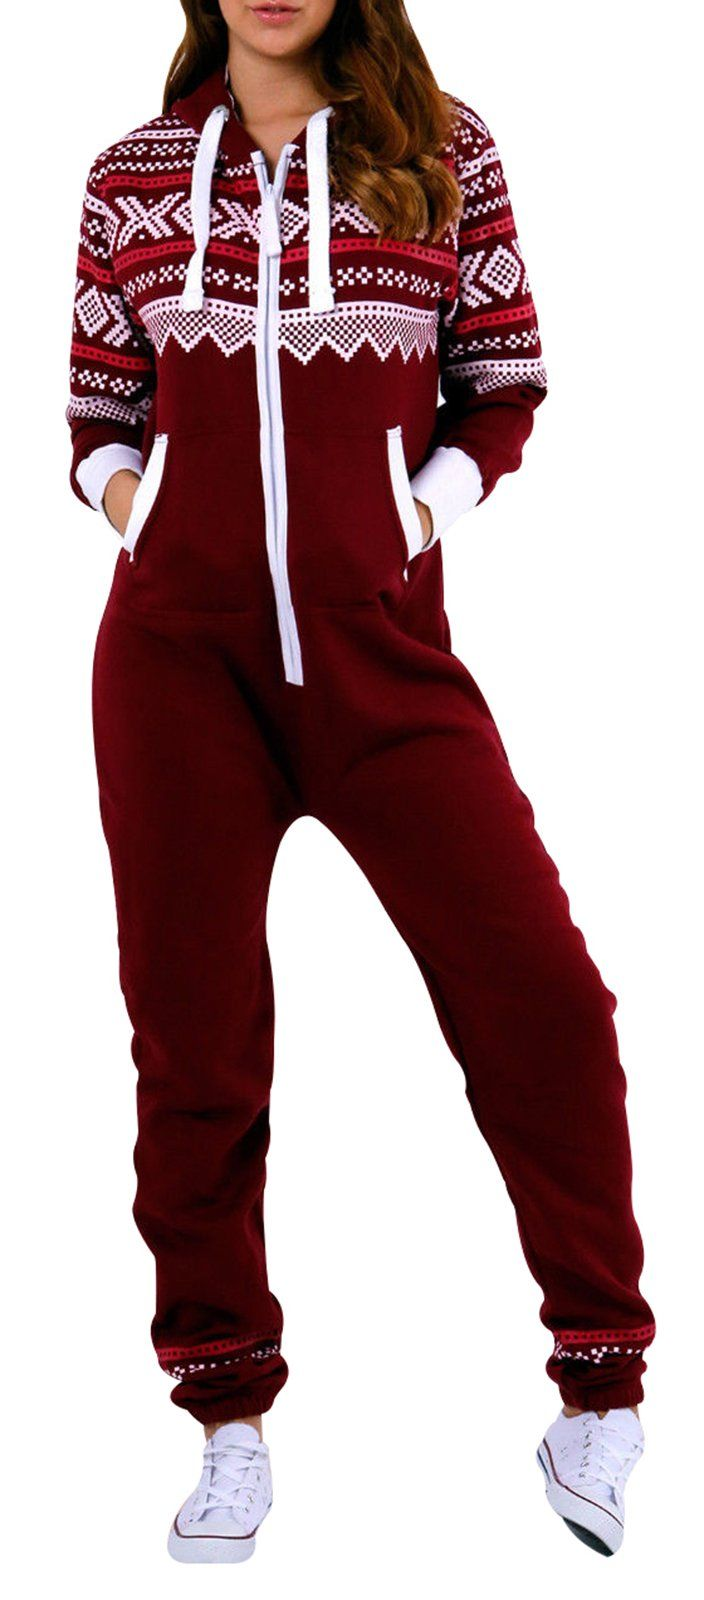 5f2870997ca3 SkylineWears Women s Onesie Fashion Printed Playsuit Ladies Jumpsuit Large  Burgundy